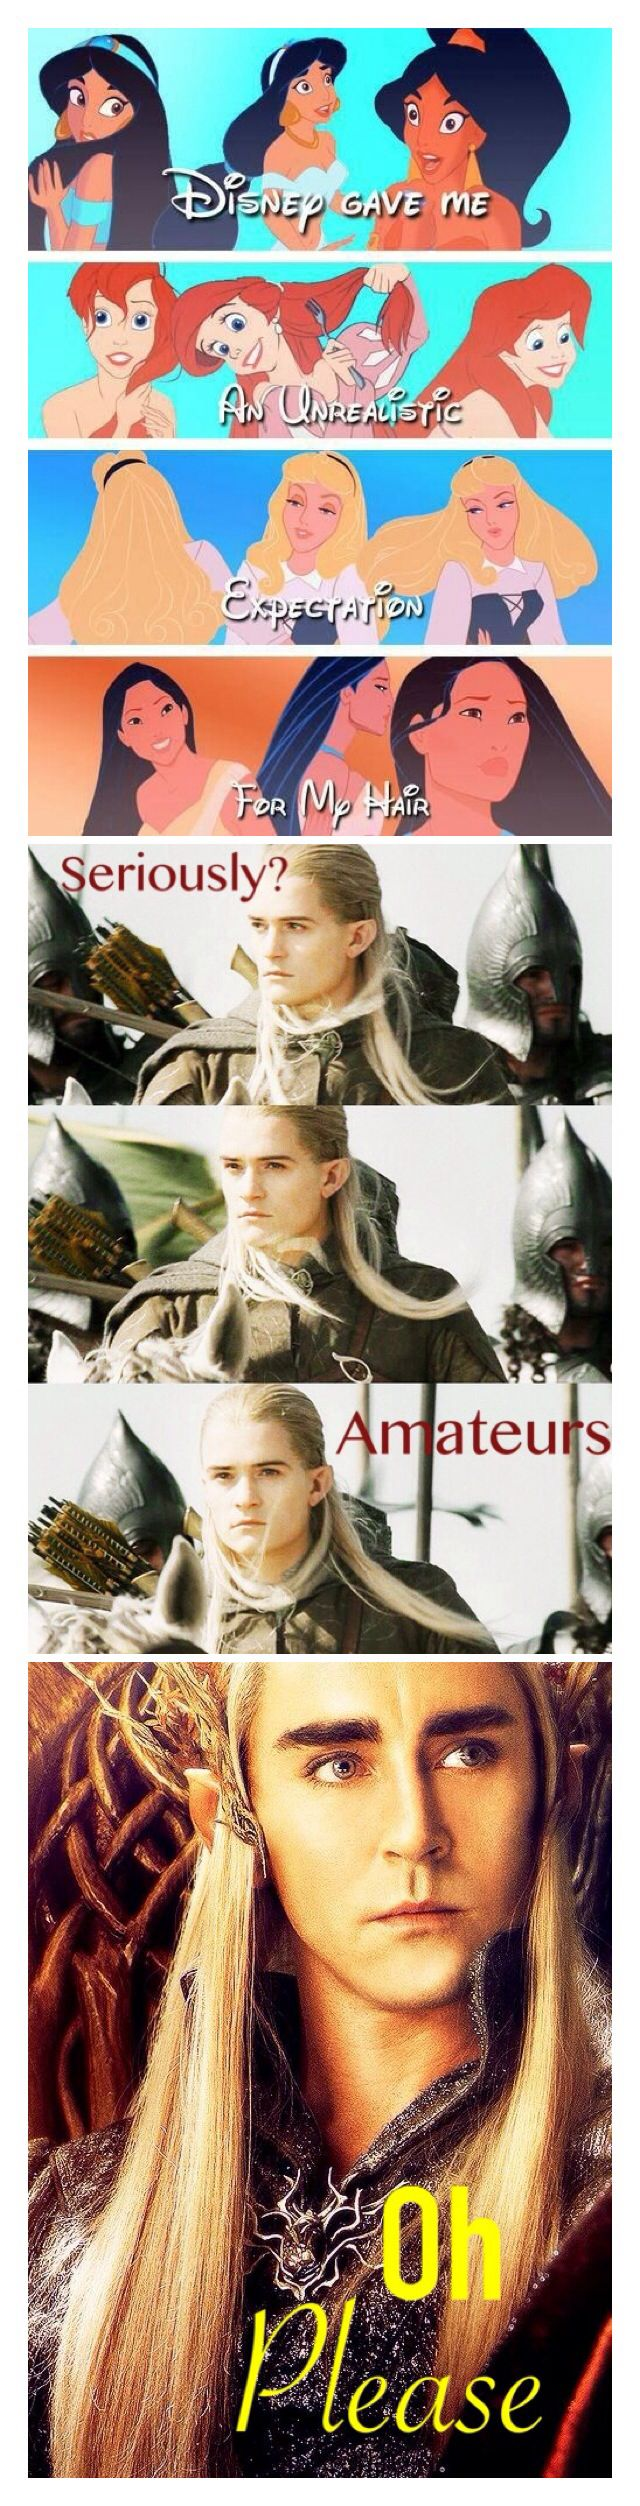 Hair competition between Disney and Elves. We all know who's winning this one. XD ~ Samantha Morton /// The Hobbit / Lord of the Rings / Disney / Legolas / Thranduil / Funny / Fabulous